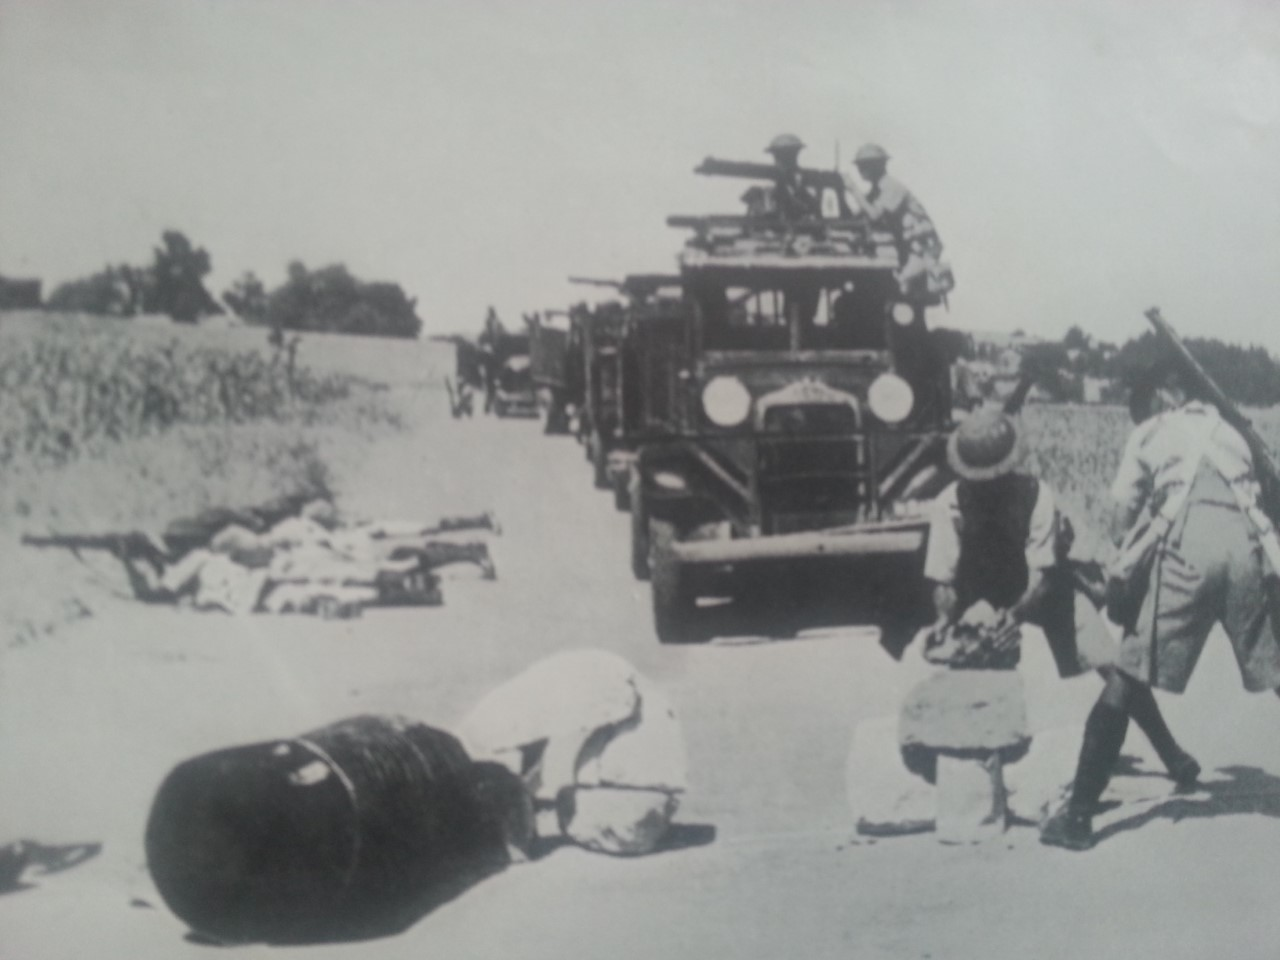 under attack from Arabs - palestine 1938